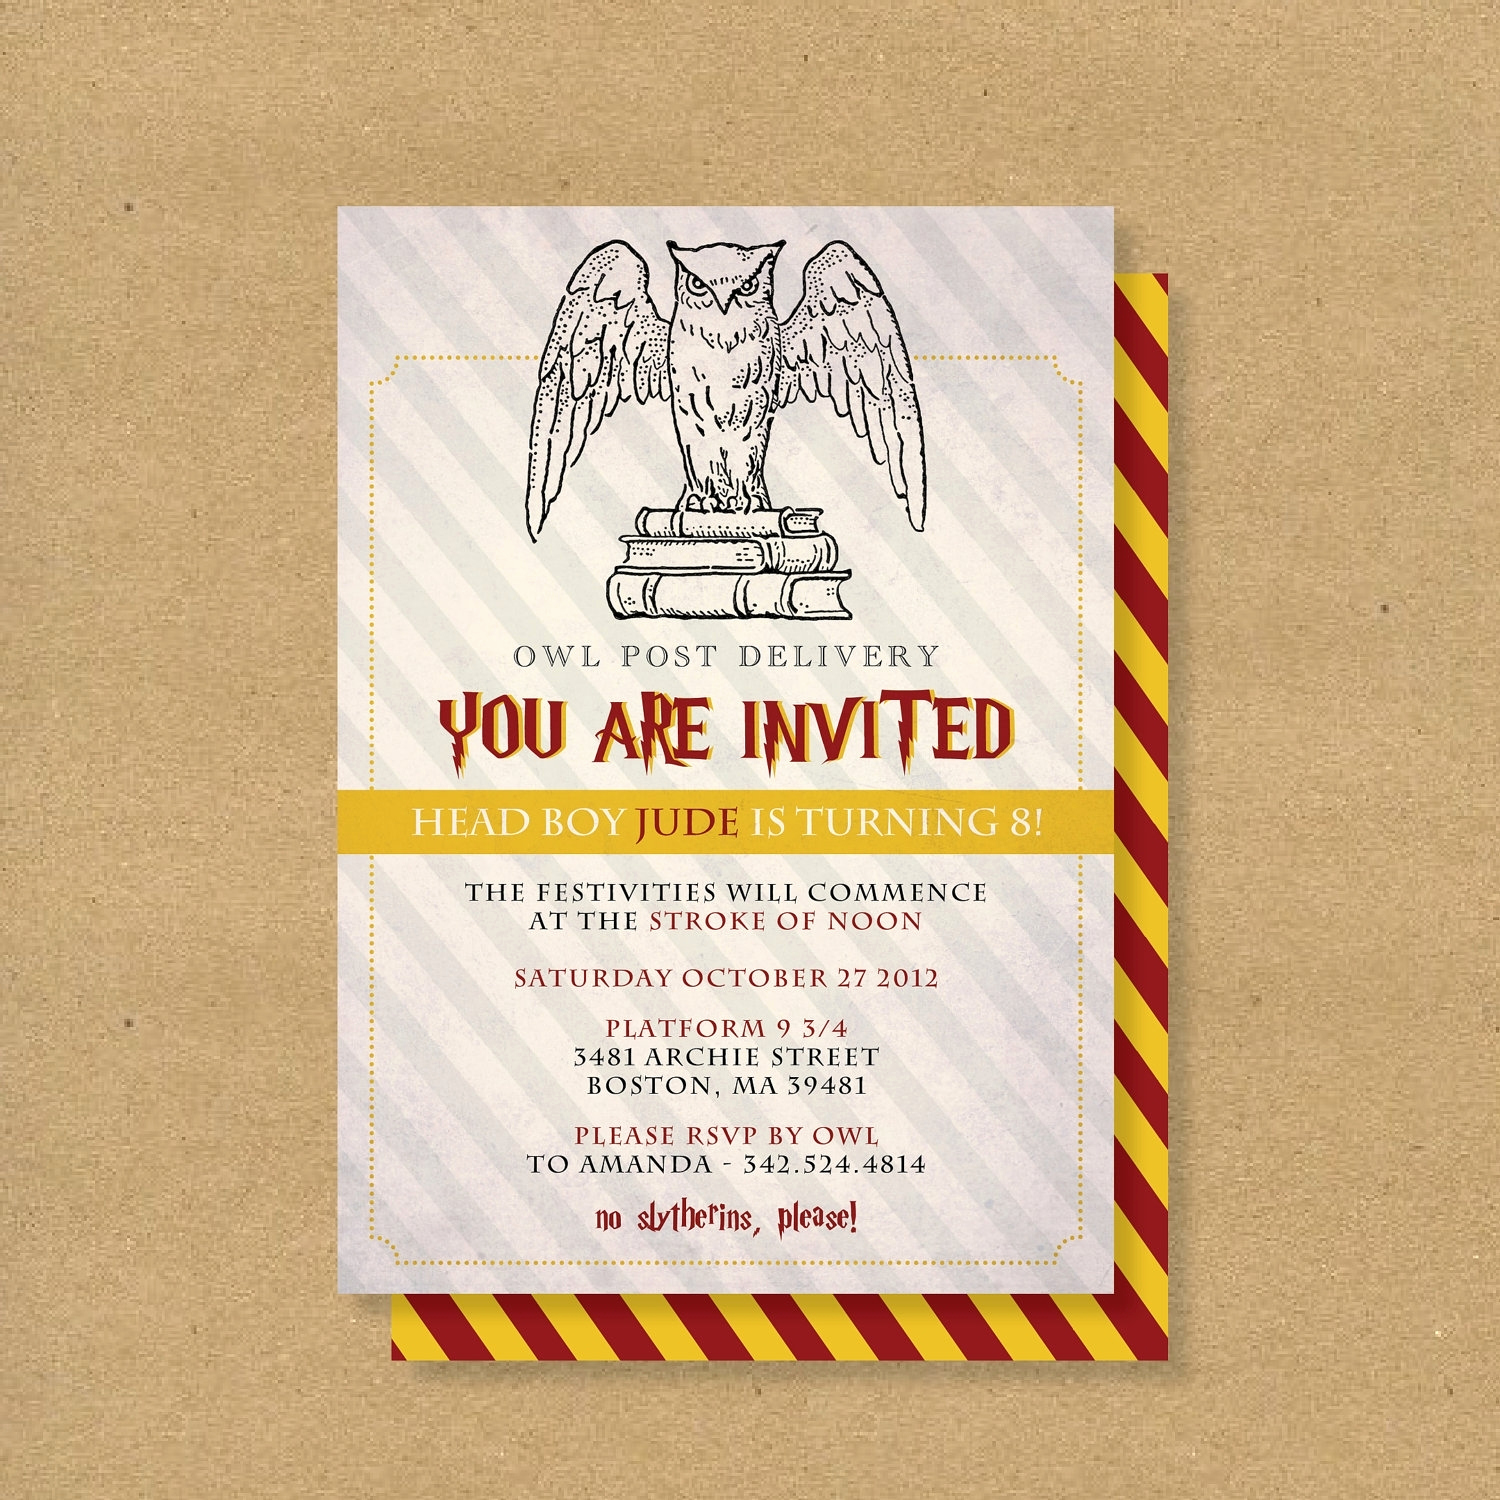 Harry Potter Party Invitation Template Unique Harry Potter Birthday Invitation Template Cobypic